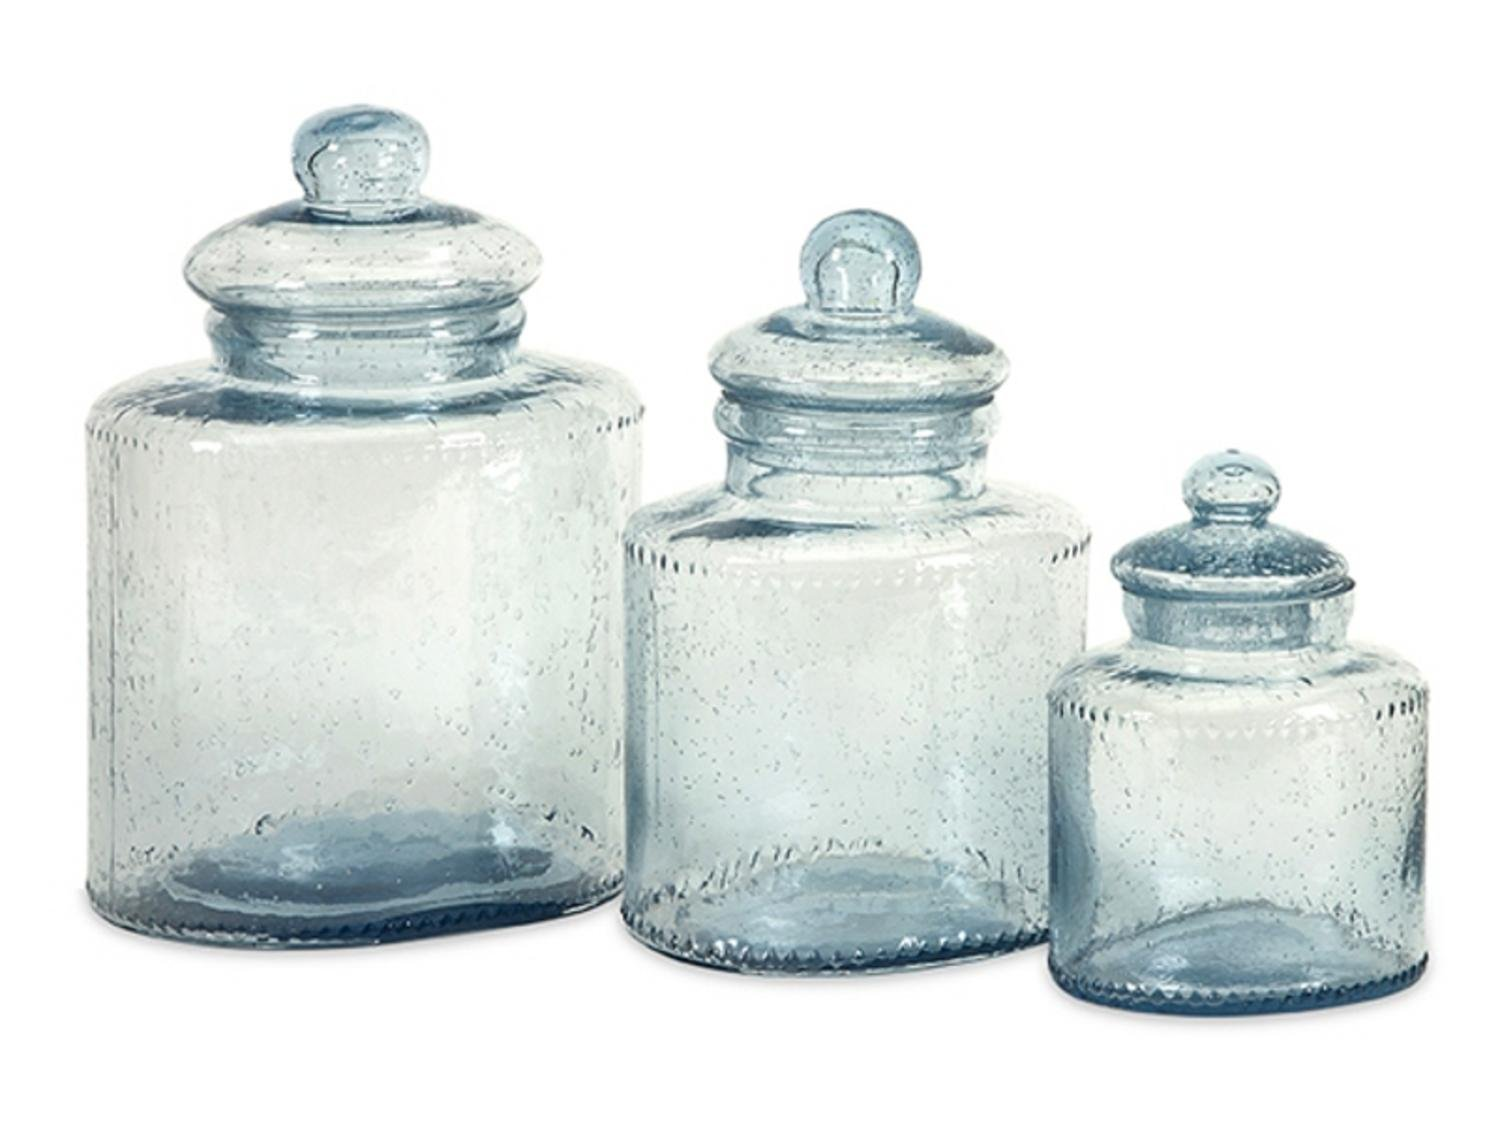 Set of 3 Celina Pale Blue Bubbled Glass Lidded Kitchen Canisters by CC Home Furnishings